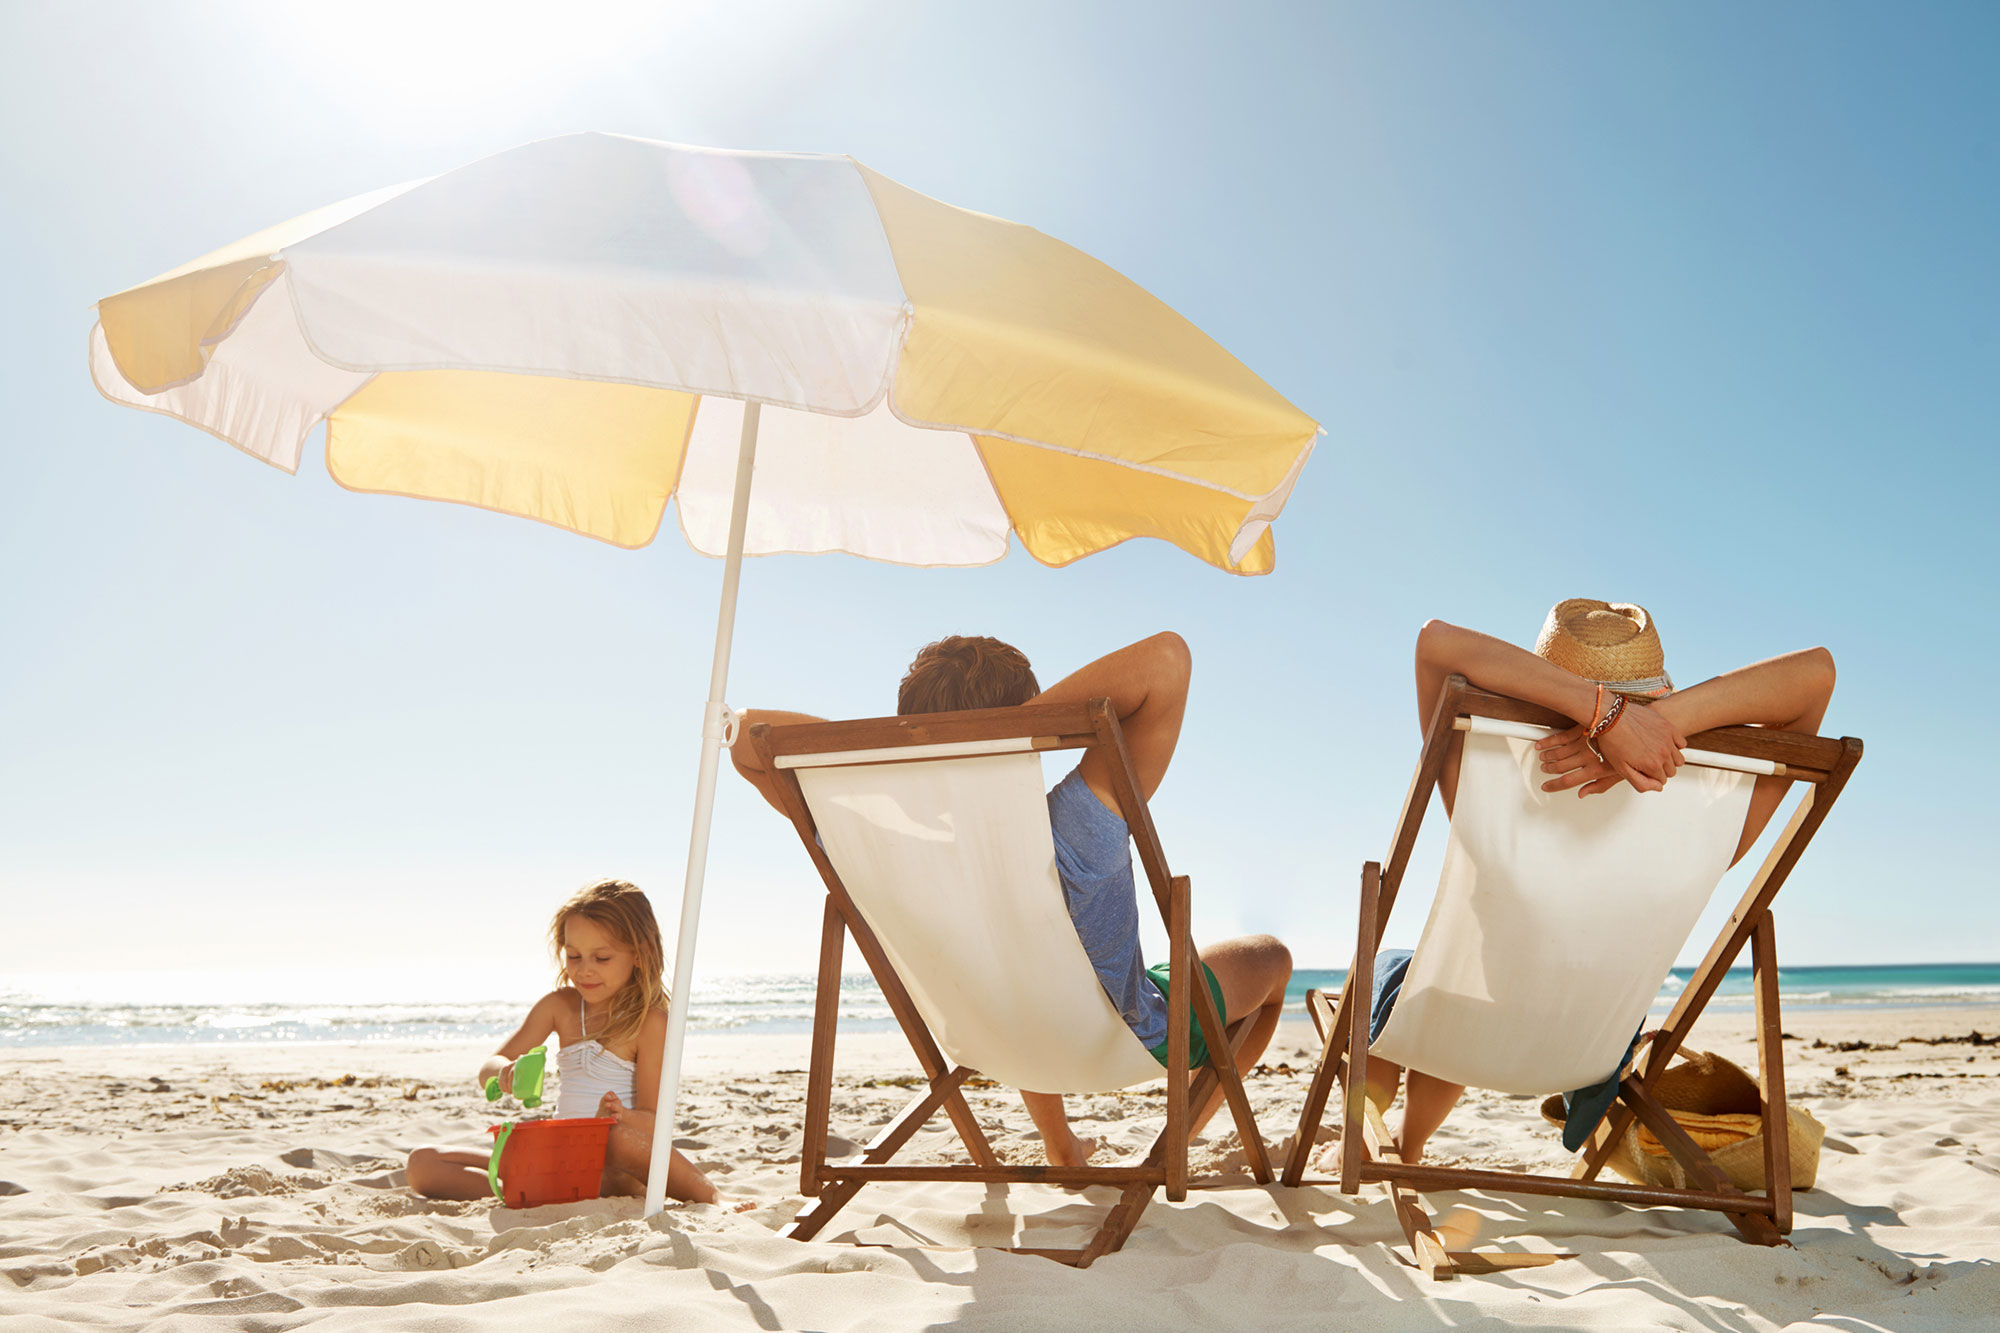 Family lounging on the beach in chairs with an umbrella blocking the sun